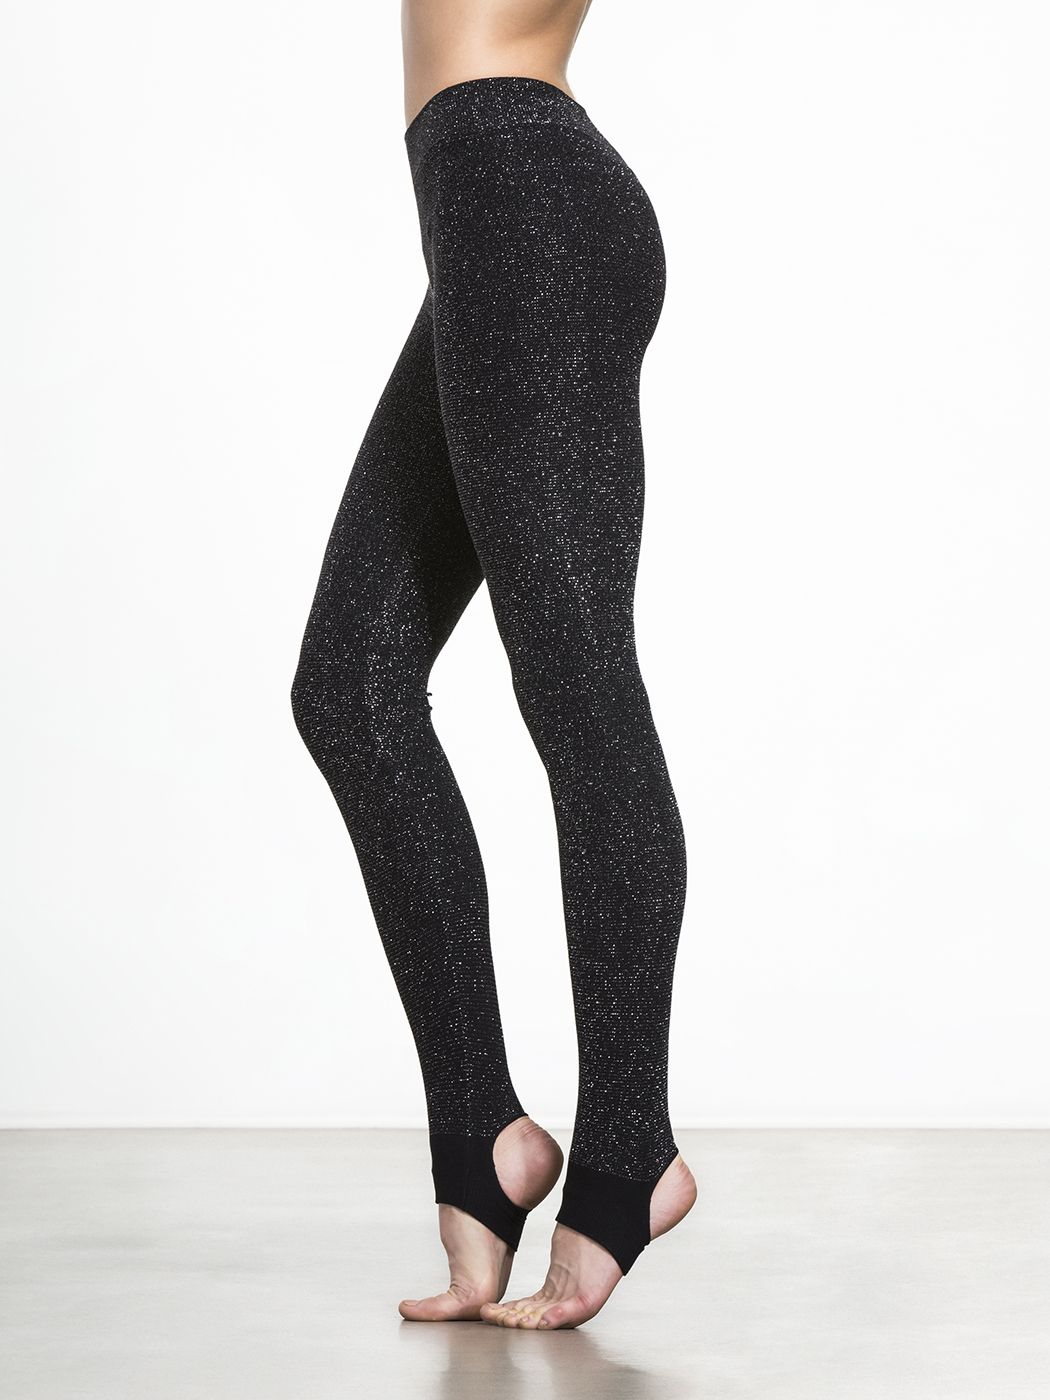 9b3db271f84481 Jane Stirrup | WEAR IT | Stirrup leggings, Leggings, Black